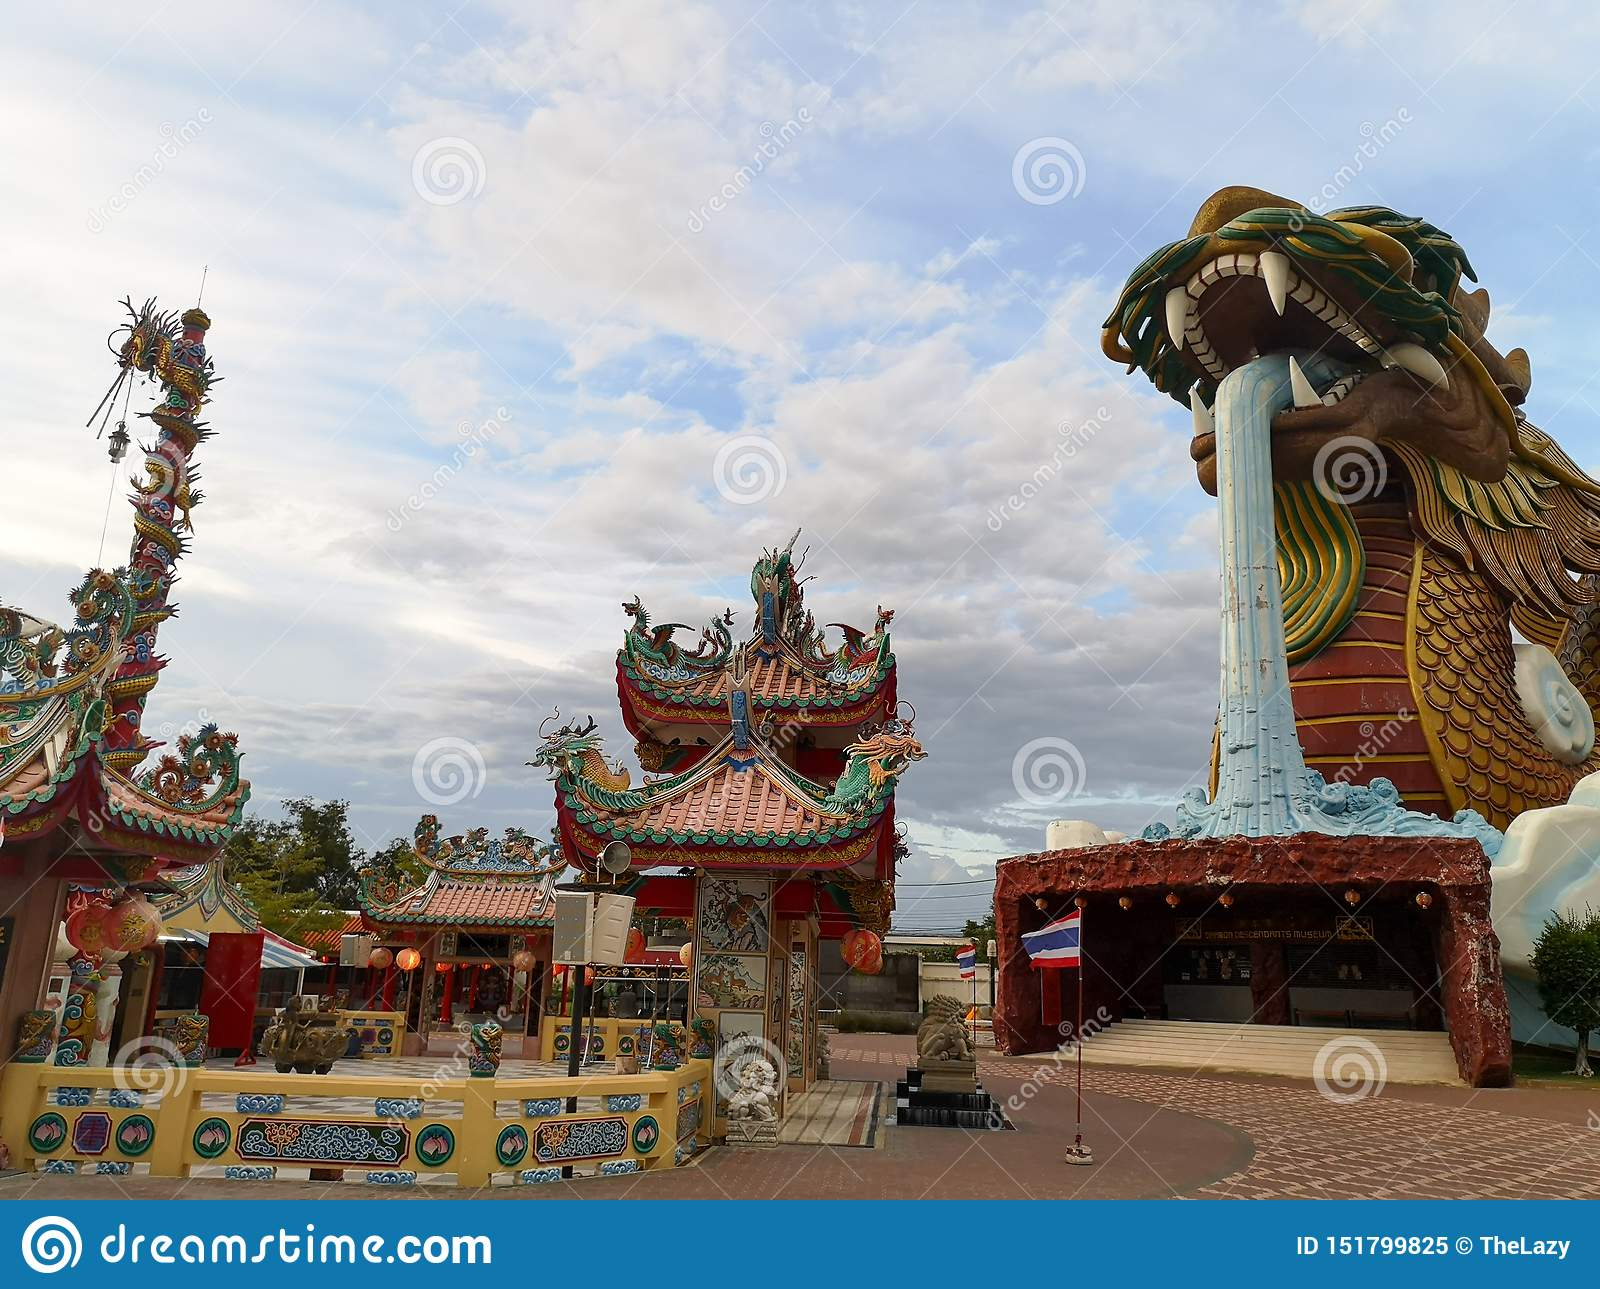 Heavenly Dragon and the main city shrine in Suphan Buri when the sky is bright.Heavenly Dragon and the main city shrine in Suphan